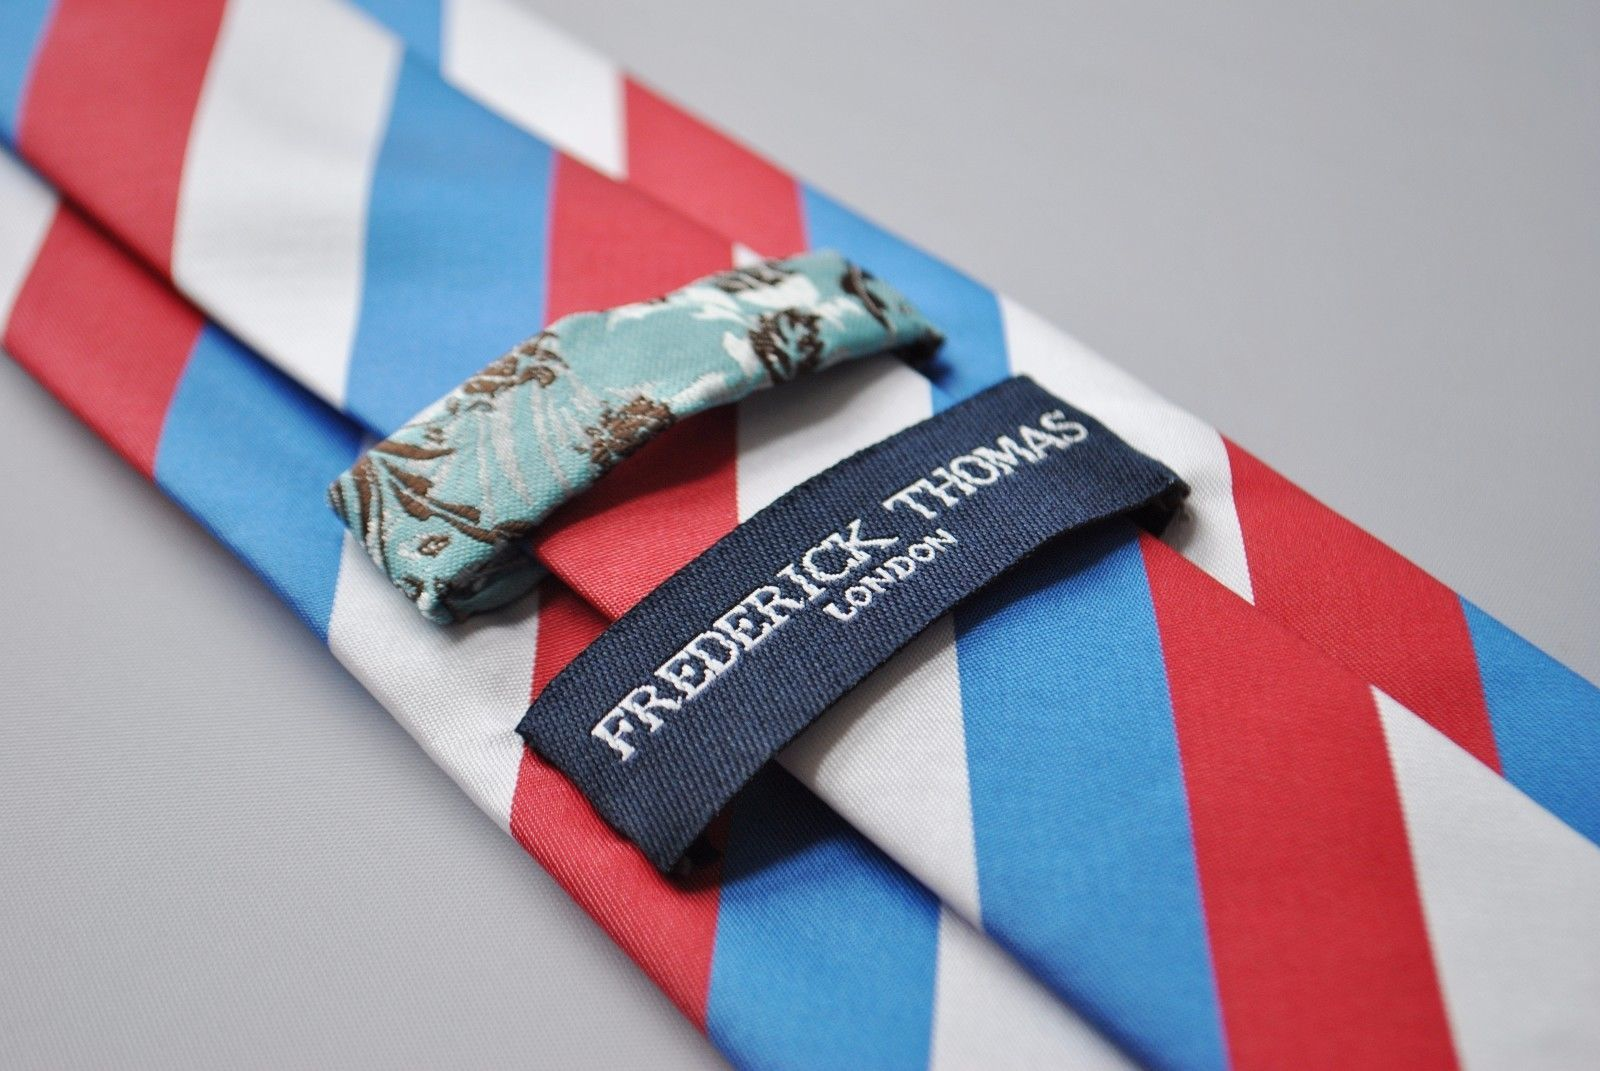 Frederick Thomas red, white & blue striped design mens tie FT1728 Rangers FC